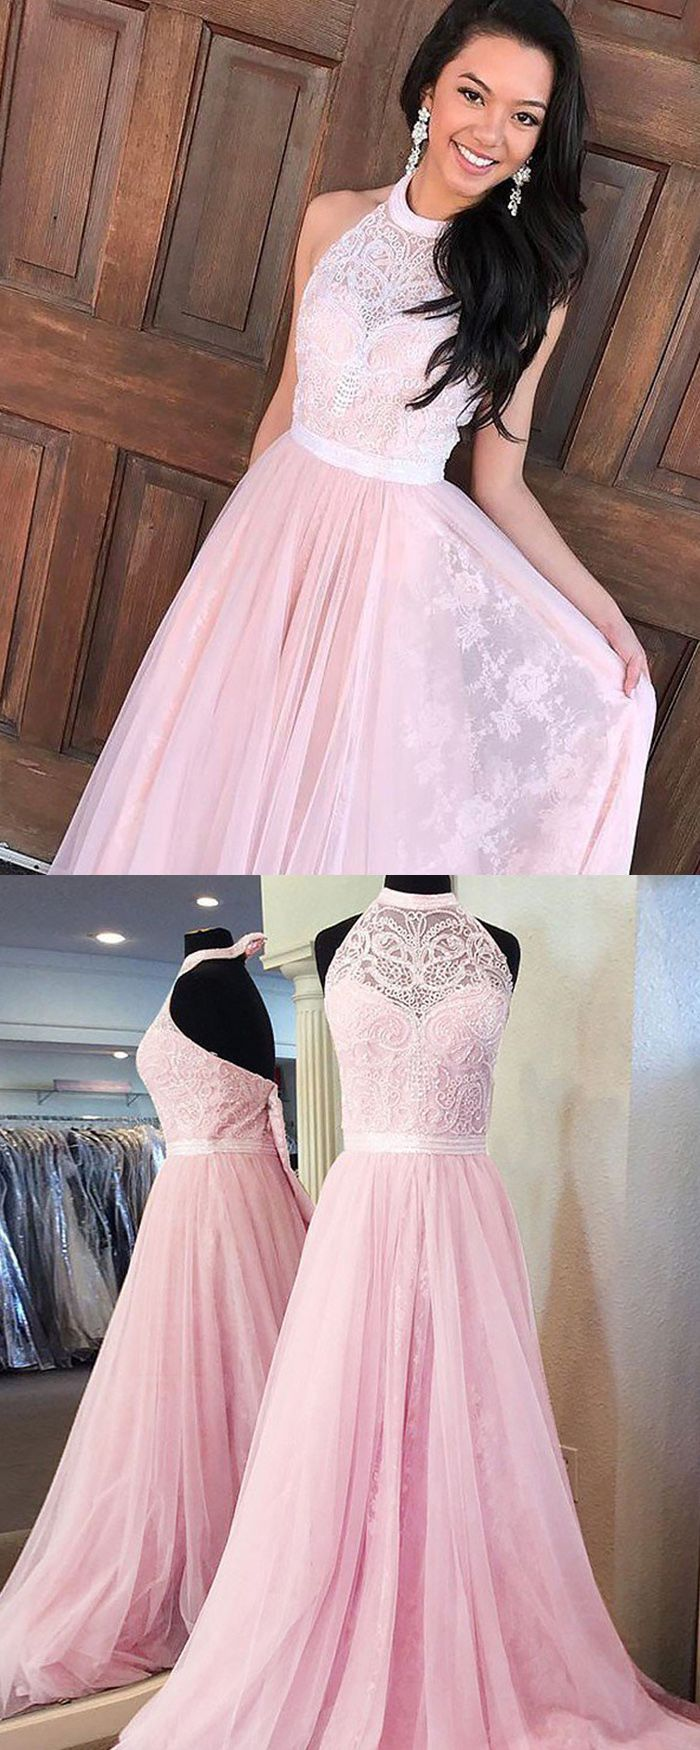 High neck lace pink pleated long prom dress pm long prom dress